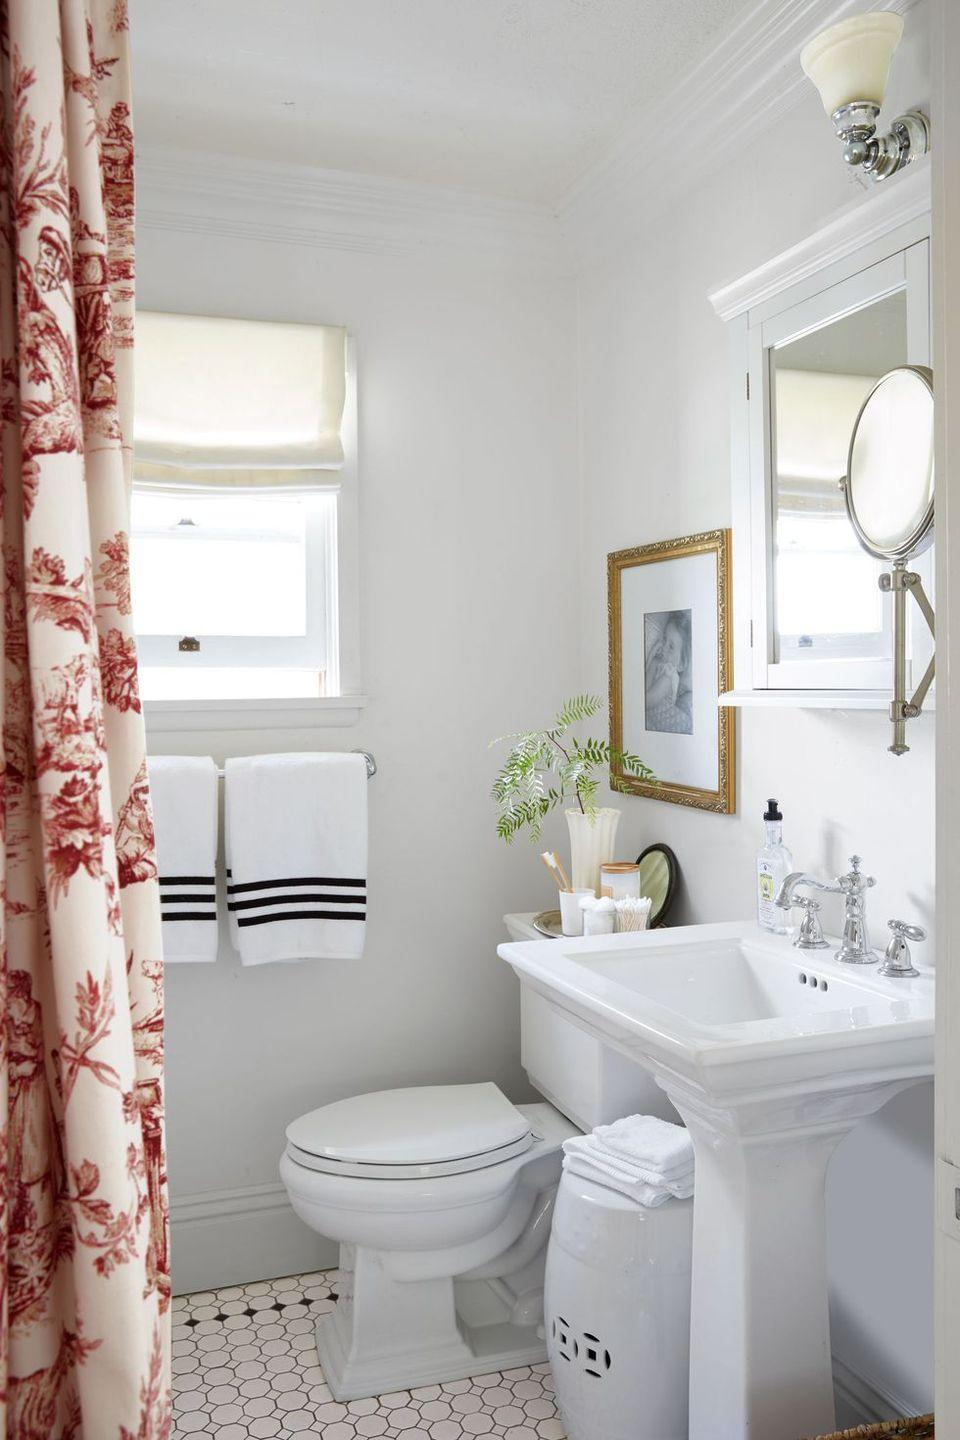 <p>Janet and Larry Korff took out the bulky bathroom door and replaced it with a stylish curtain. The upgrade makes the space feel far less cramped, but it still ensures privacy.</p>